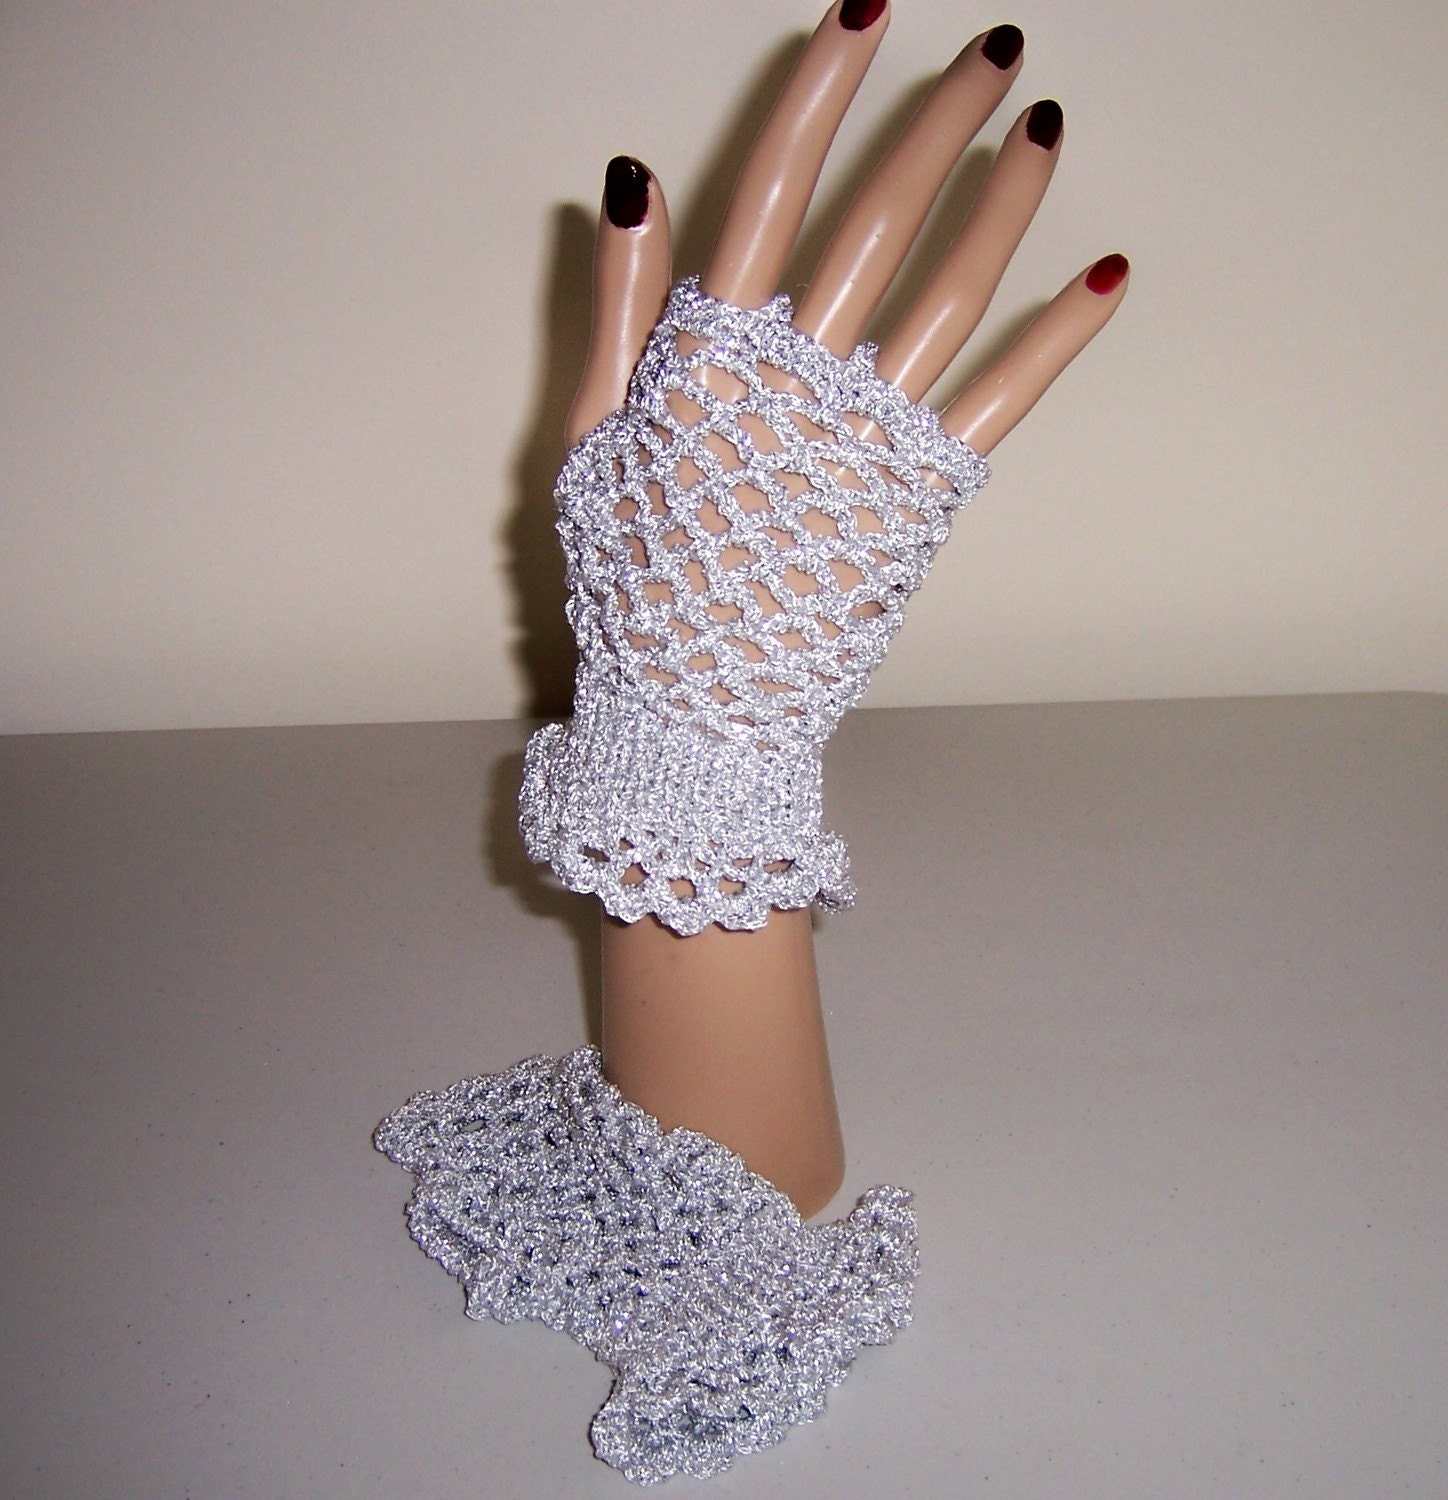 Fingerless Lace Glove, Frilled at Wrist, Silver